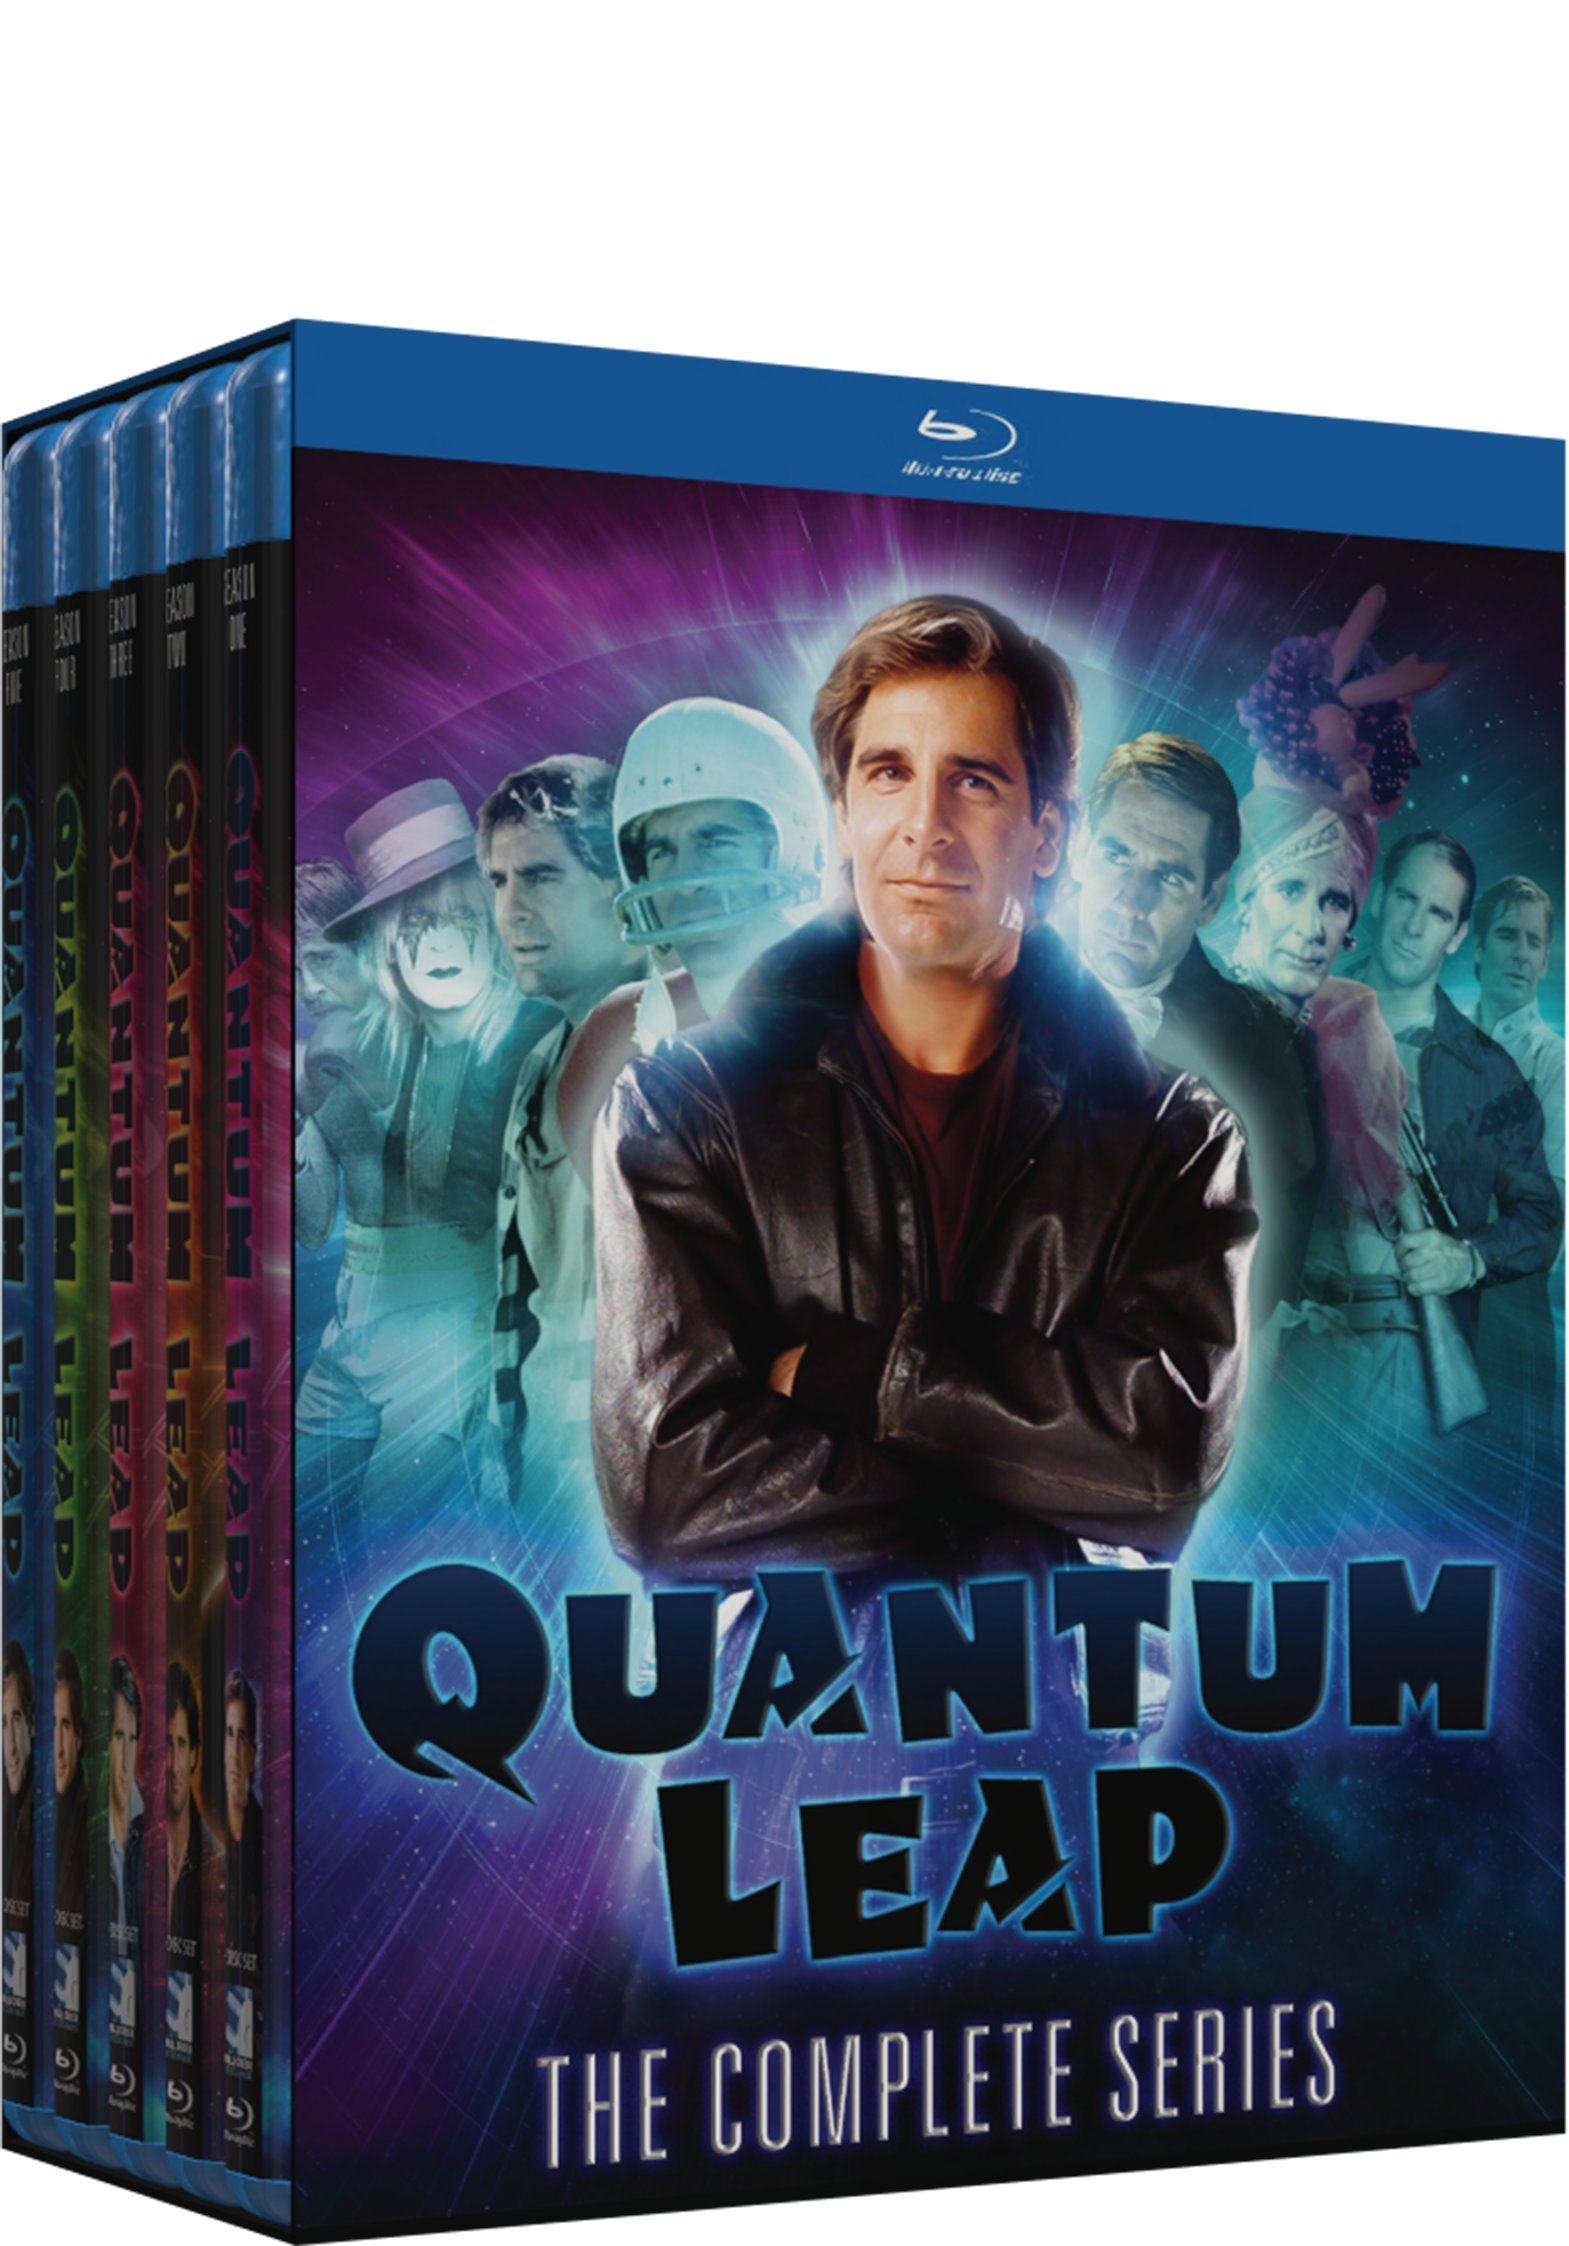 Quantum Leap: Complete Series - Blu-ray by Mill Creek